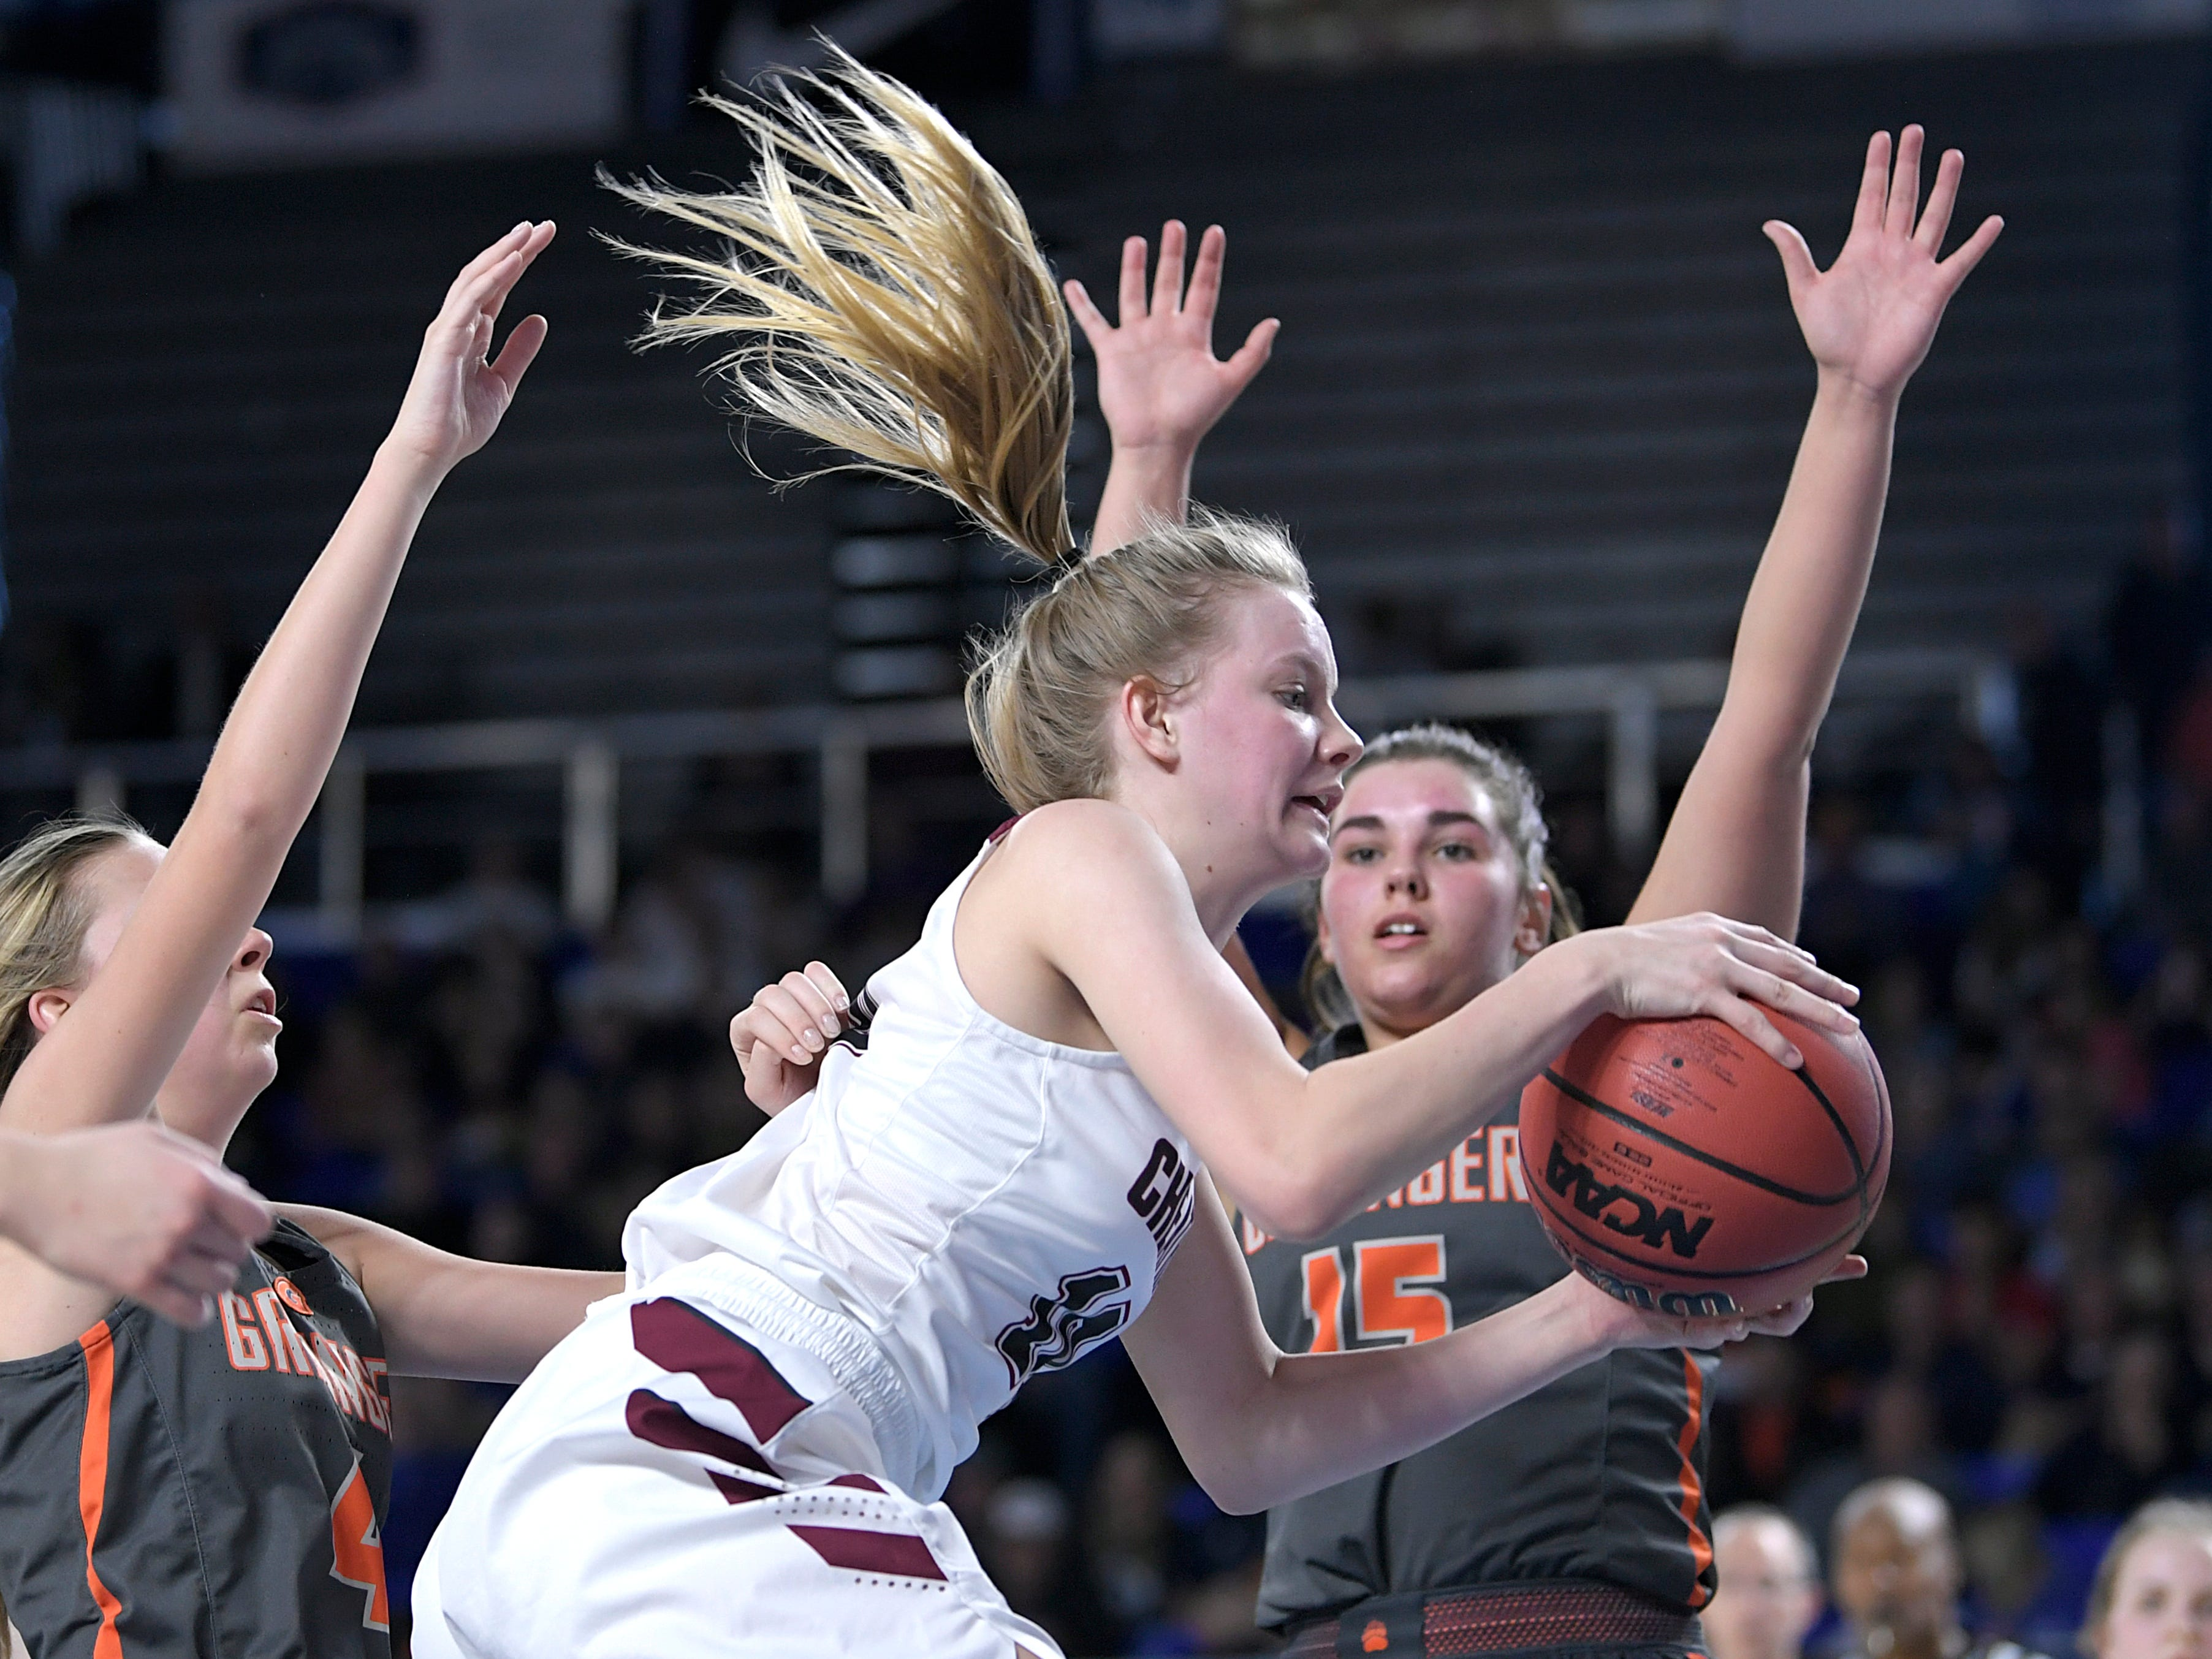 Cheatham County's Abbi Douglas (10) drives to the basket against Grainger's Matty Turner (4) and Abbey Hodge (15) during the quarter finals of TSSAA BlueCross Class AA girls basketball championship at MTSU's Murphy Center in Murfreesboro on Wednesday, March 6, 2019.